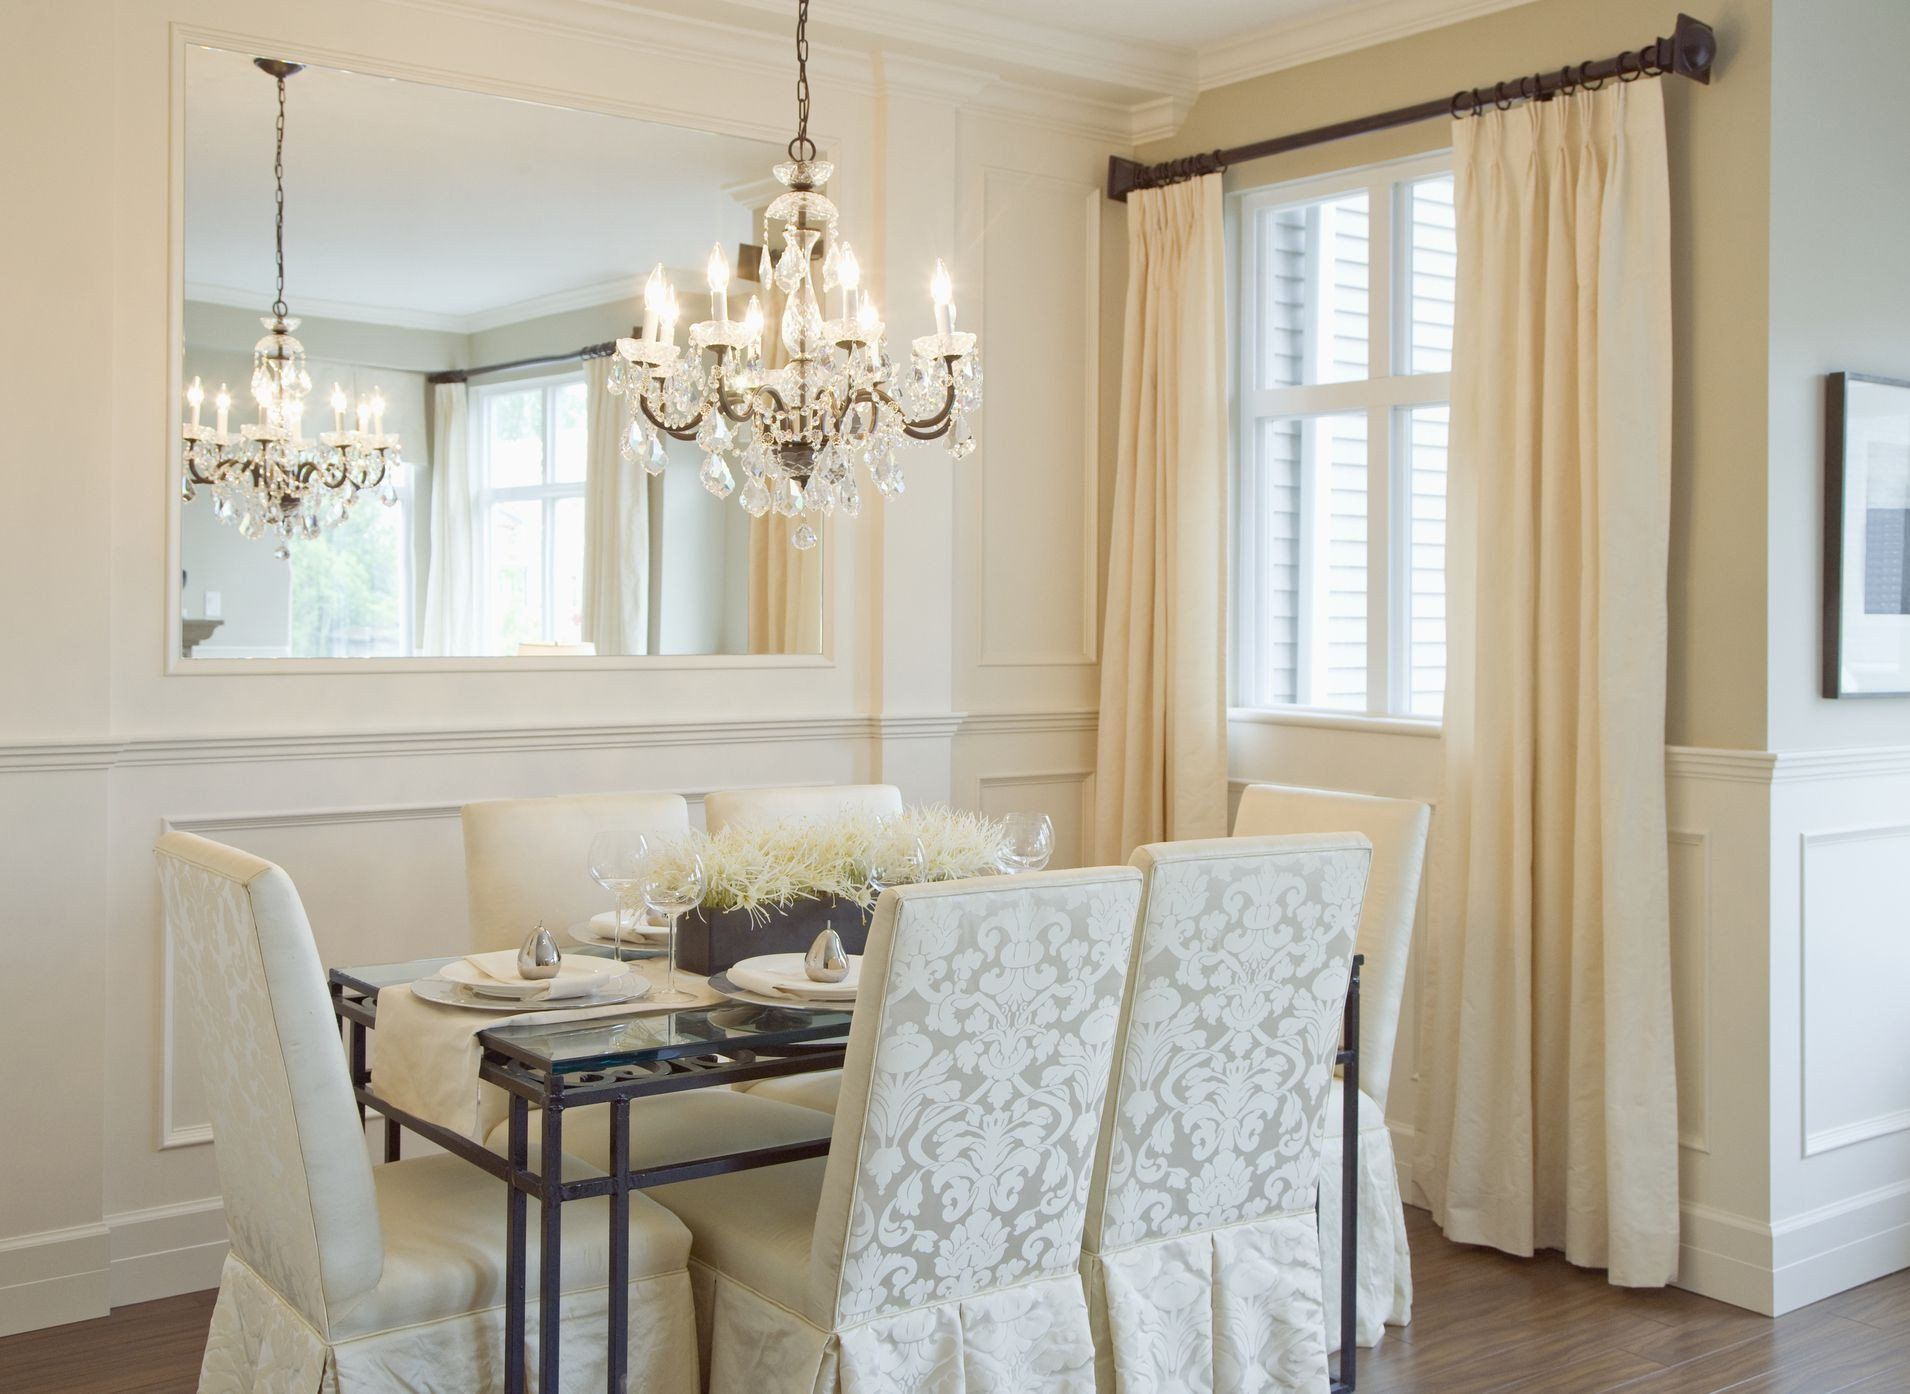 Large Dining Room Mirror Inspirational How To Use Mirrors For Good Feng Shui Mirror Dining Room Dining Room Design Modern Feng Shui Living Room